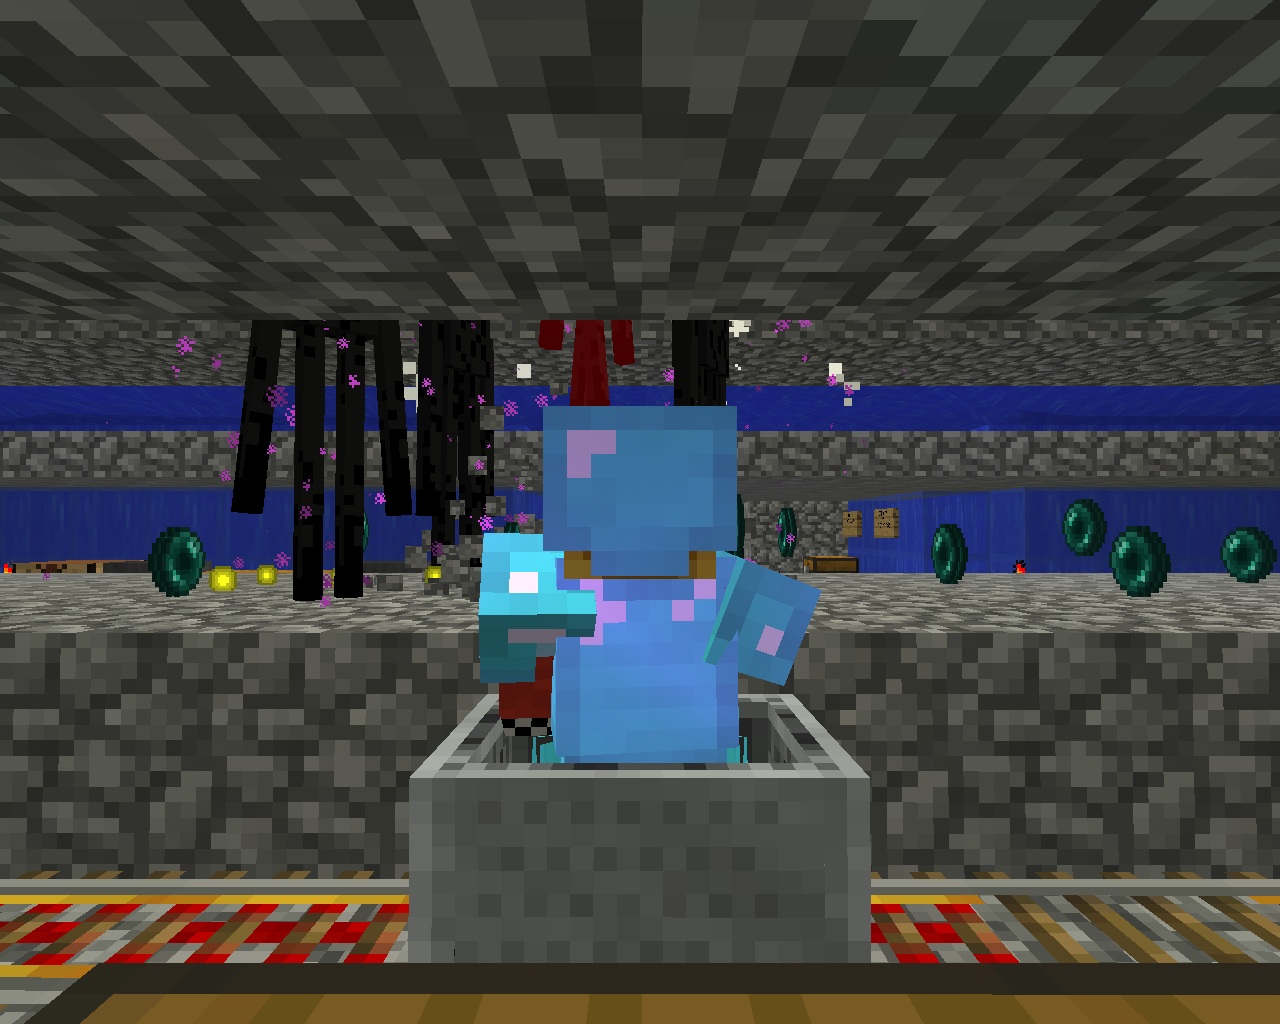 Not much left to do to gain xp now minecraft